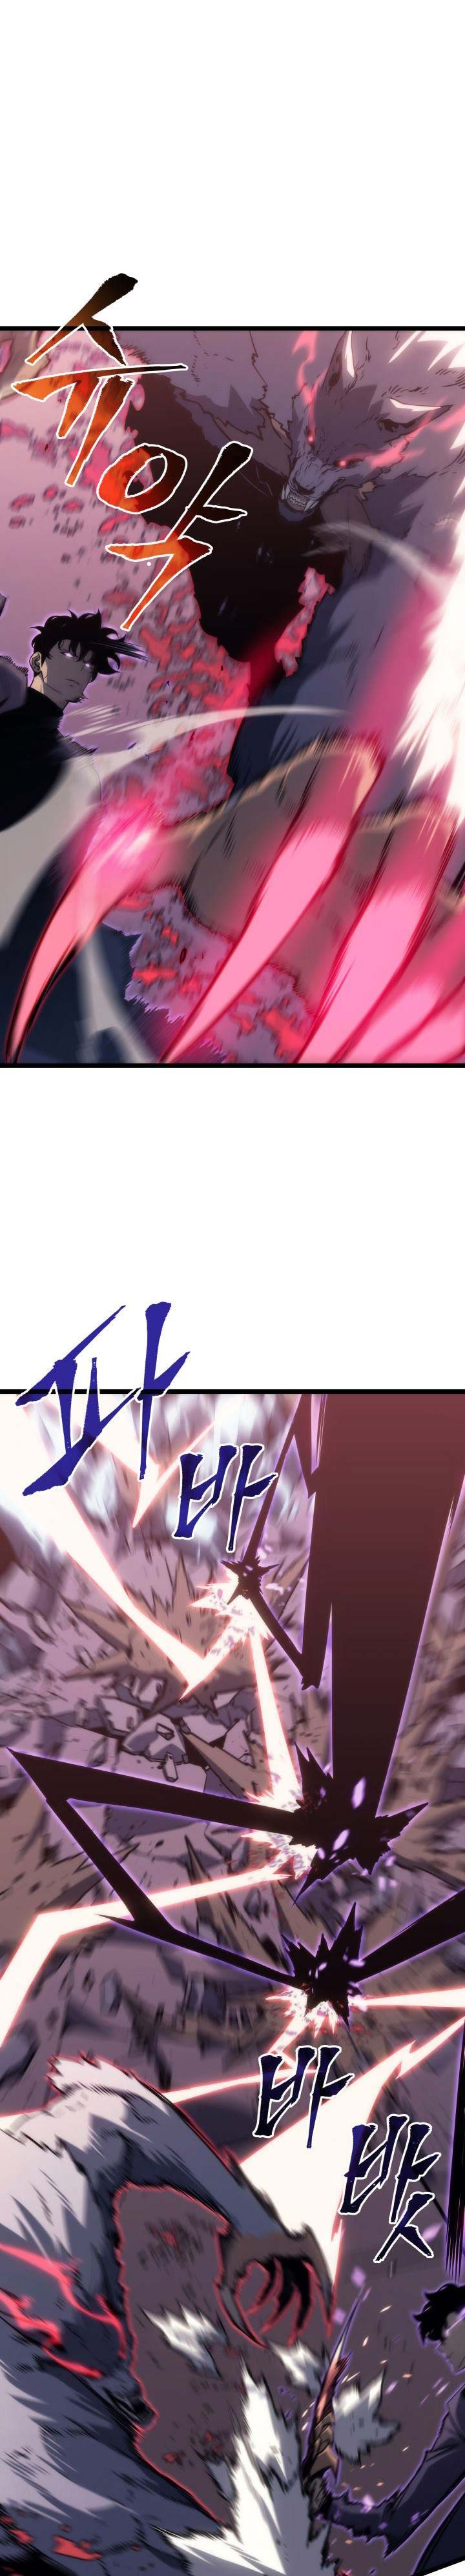 Solo Leveling: Chapter 159 - Page 7